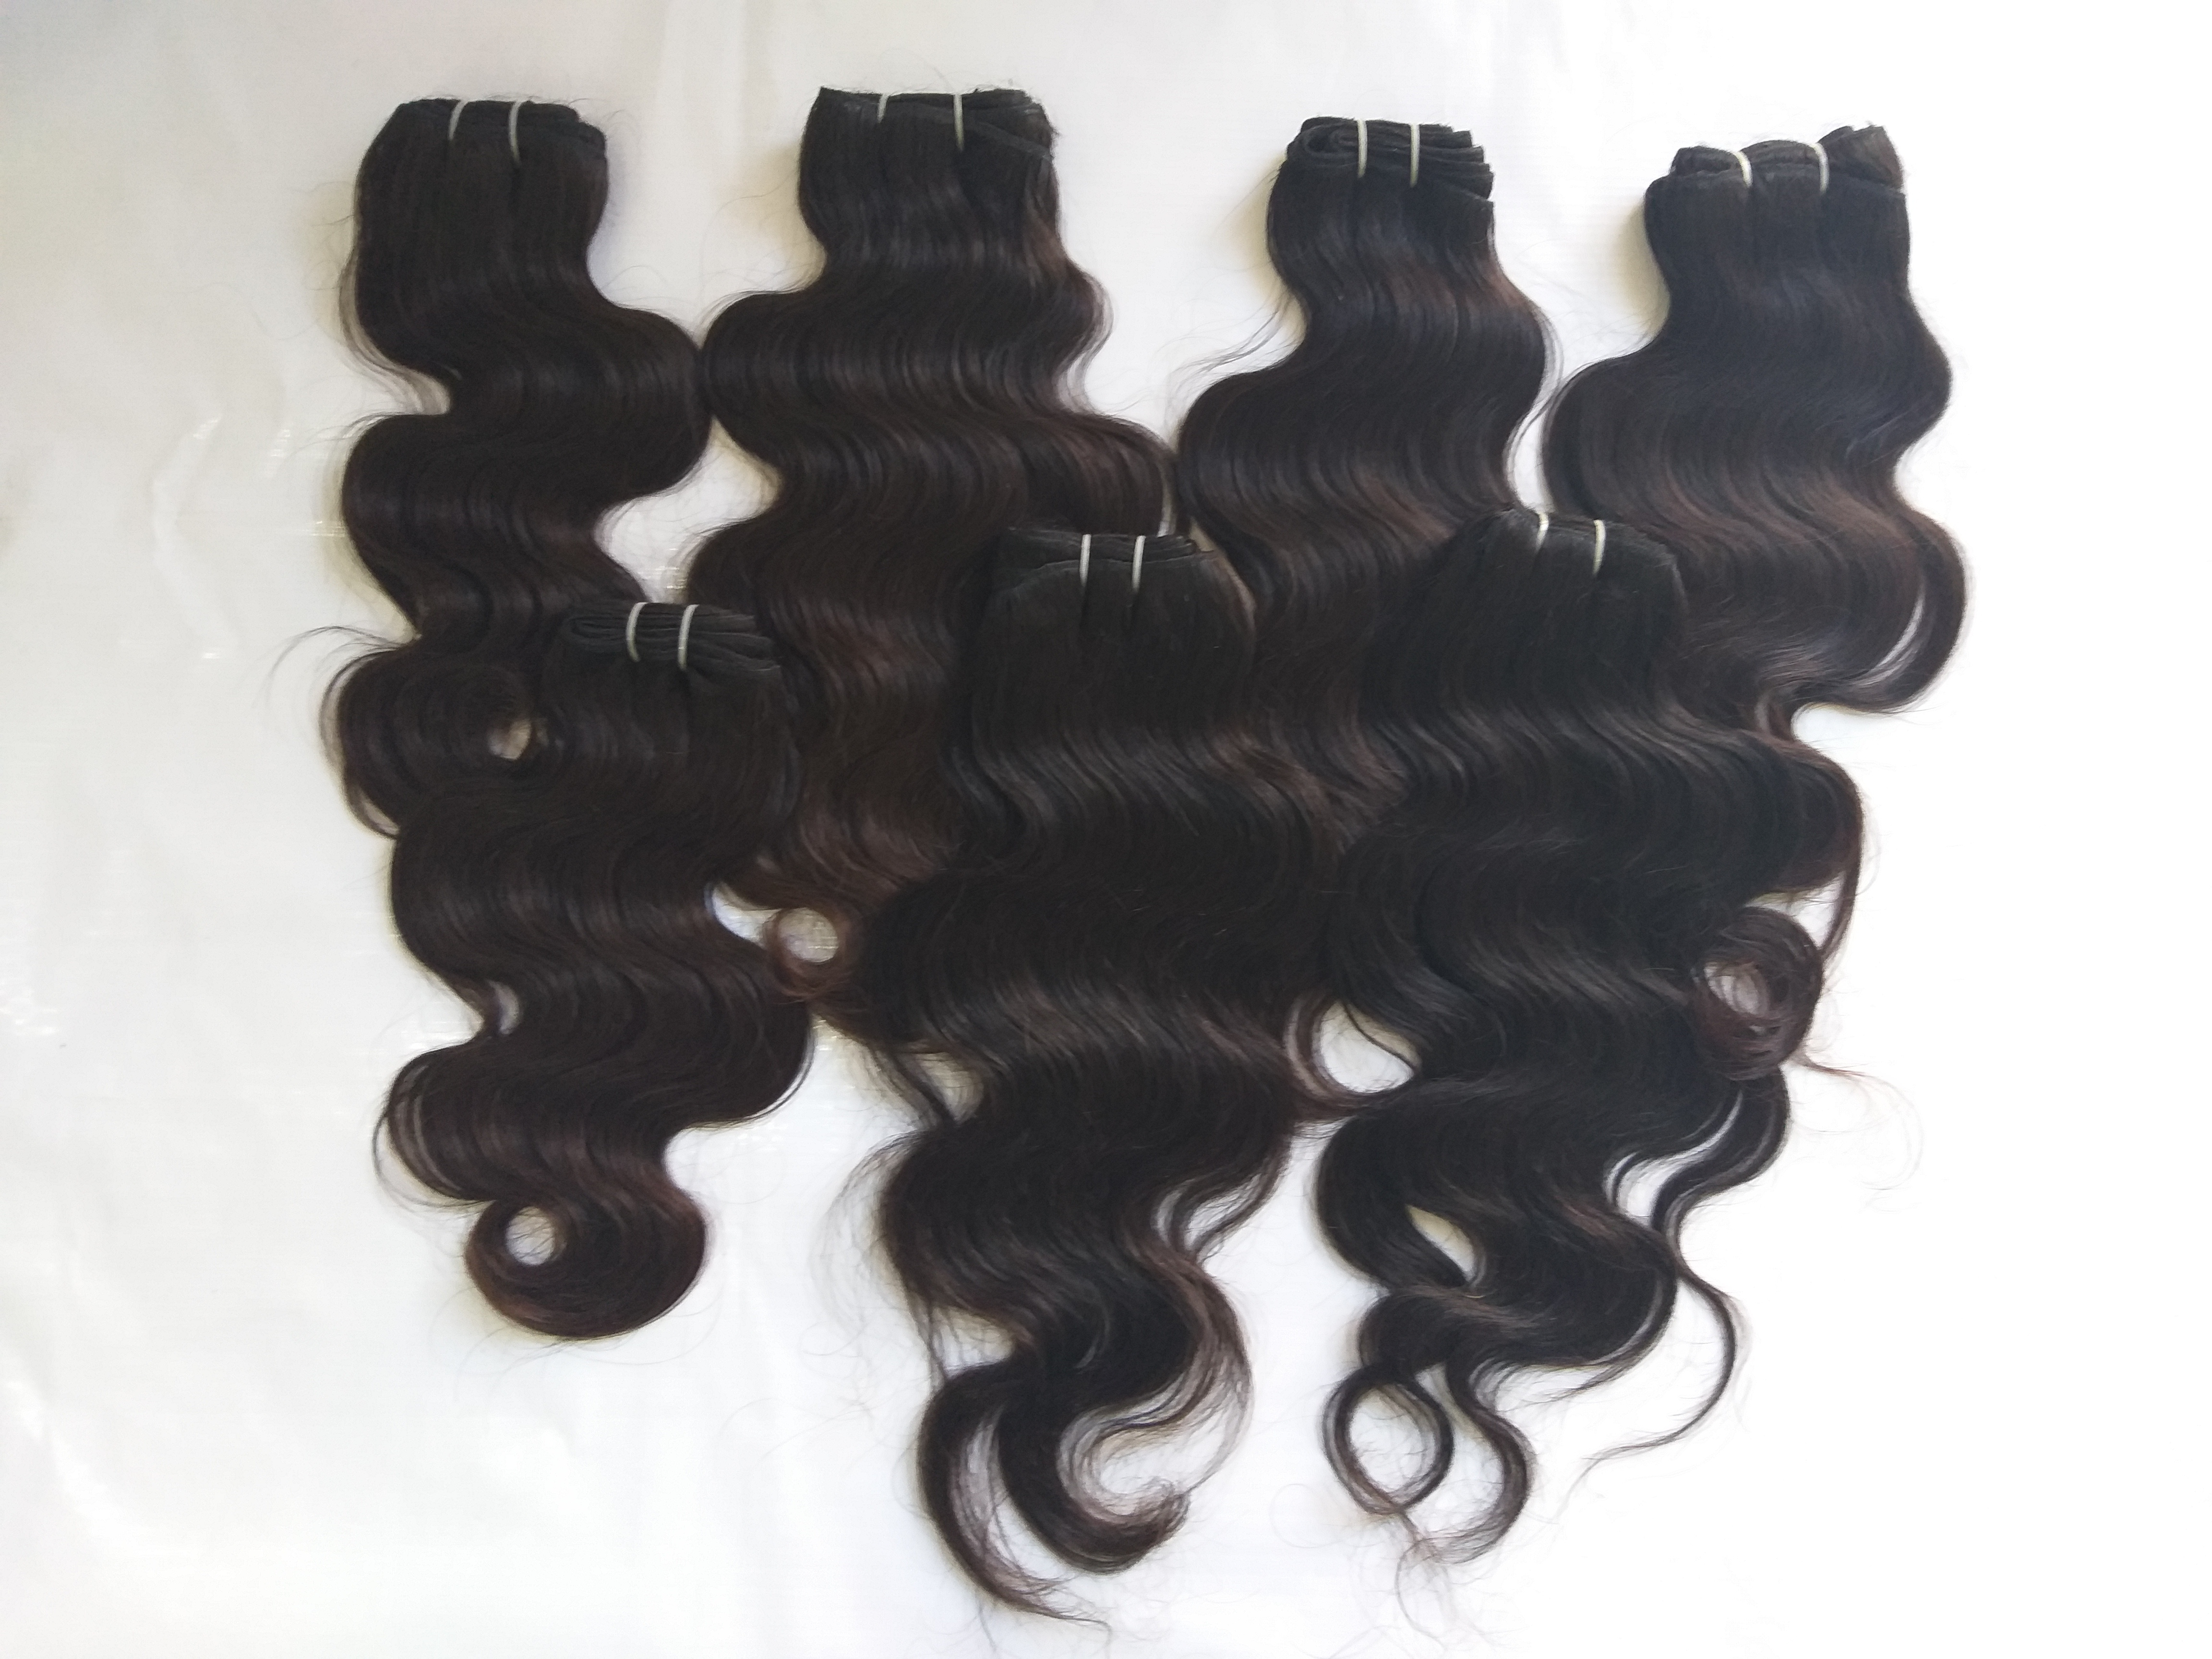 Raw Body Wave Human Hair